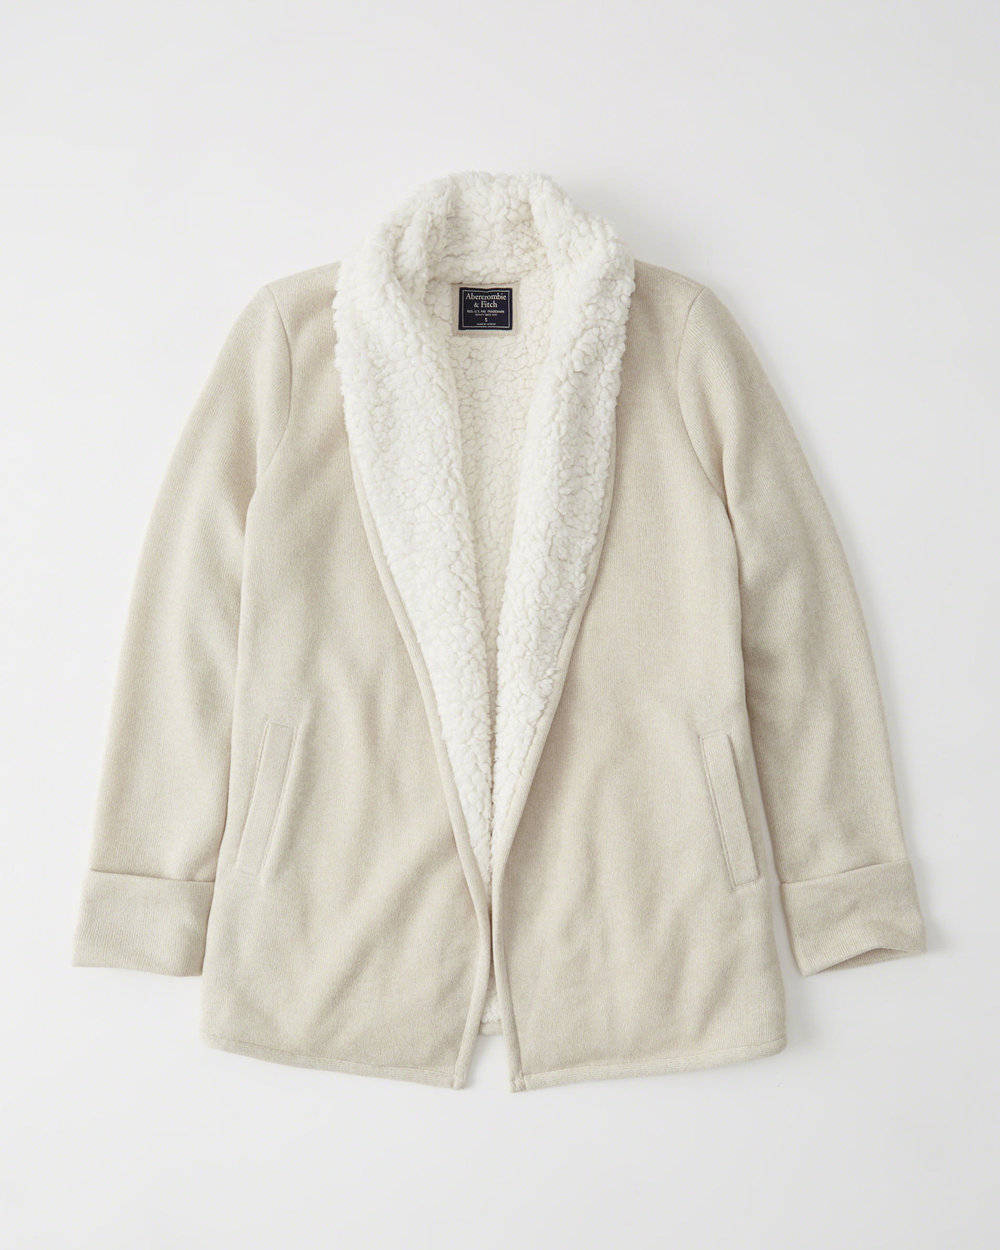 Sherpa Lined Cardigan .